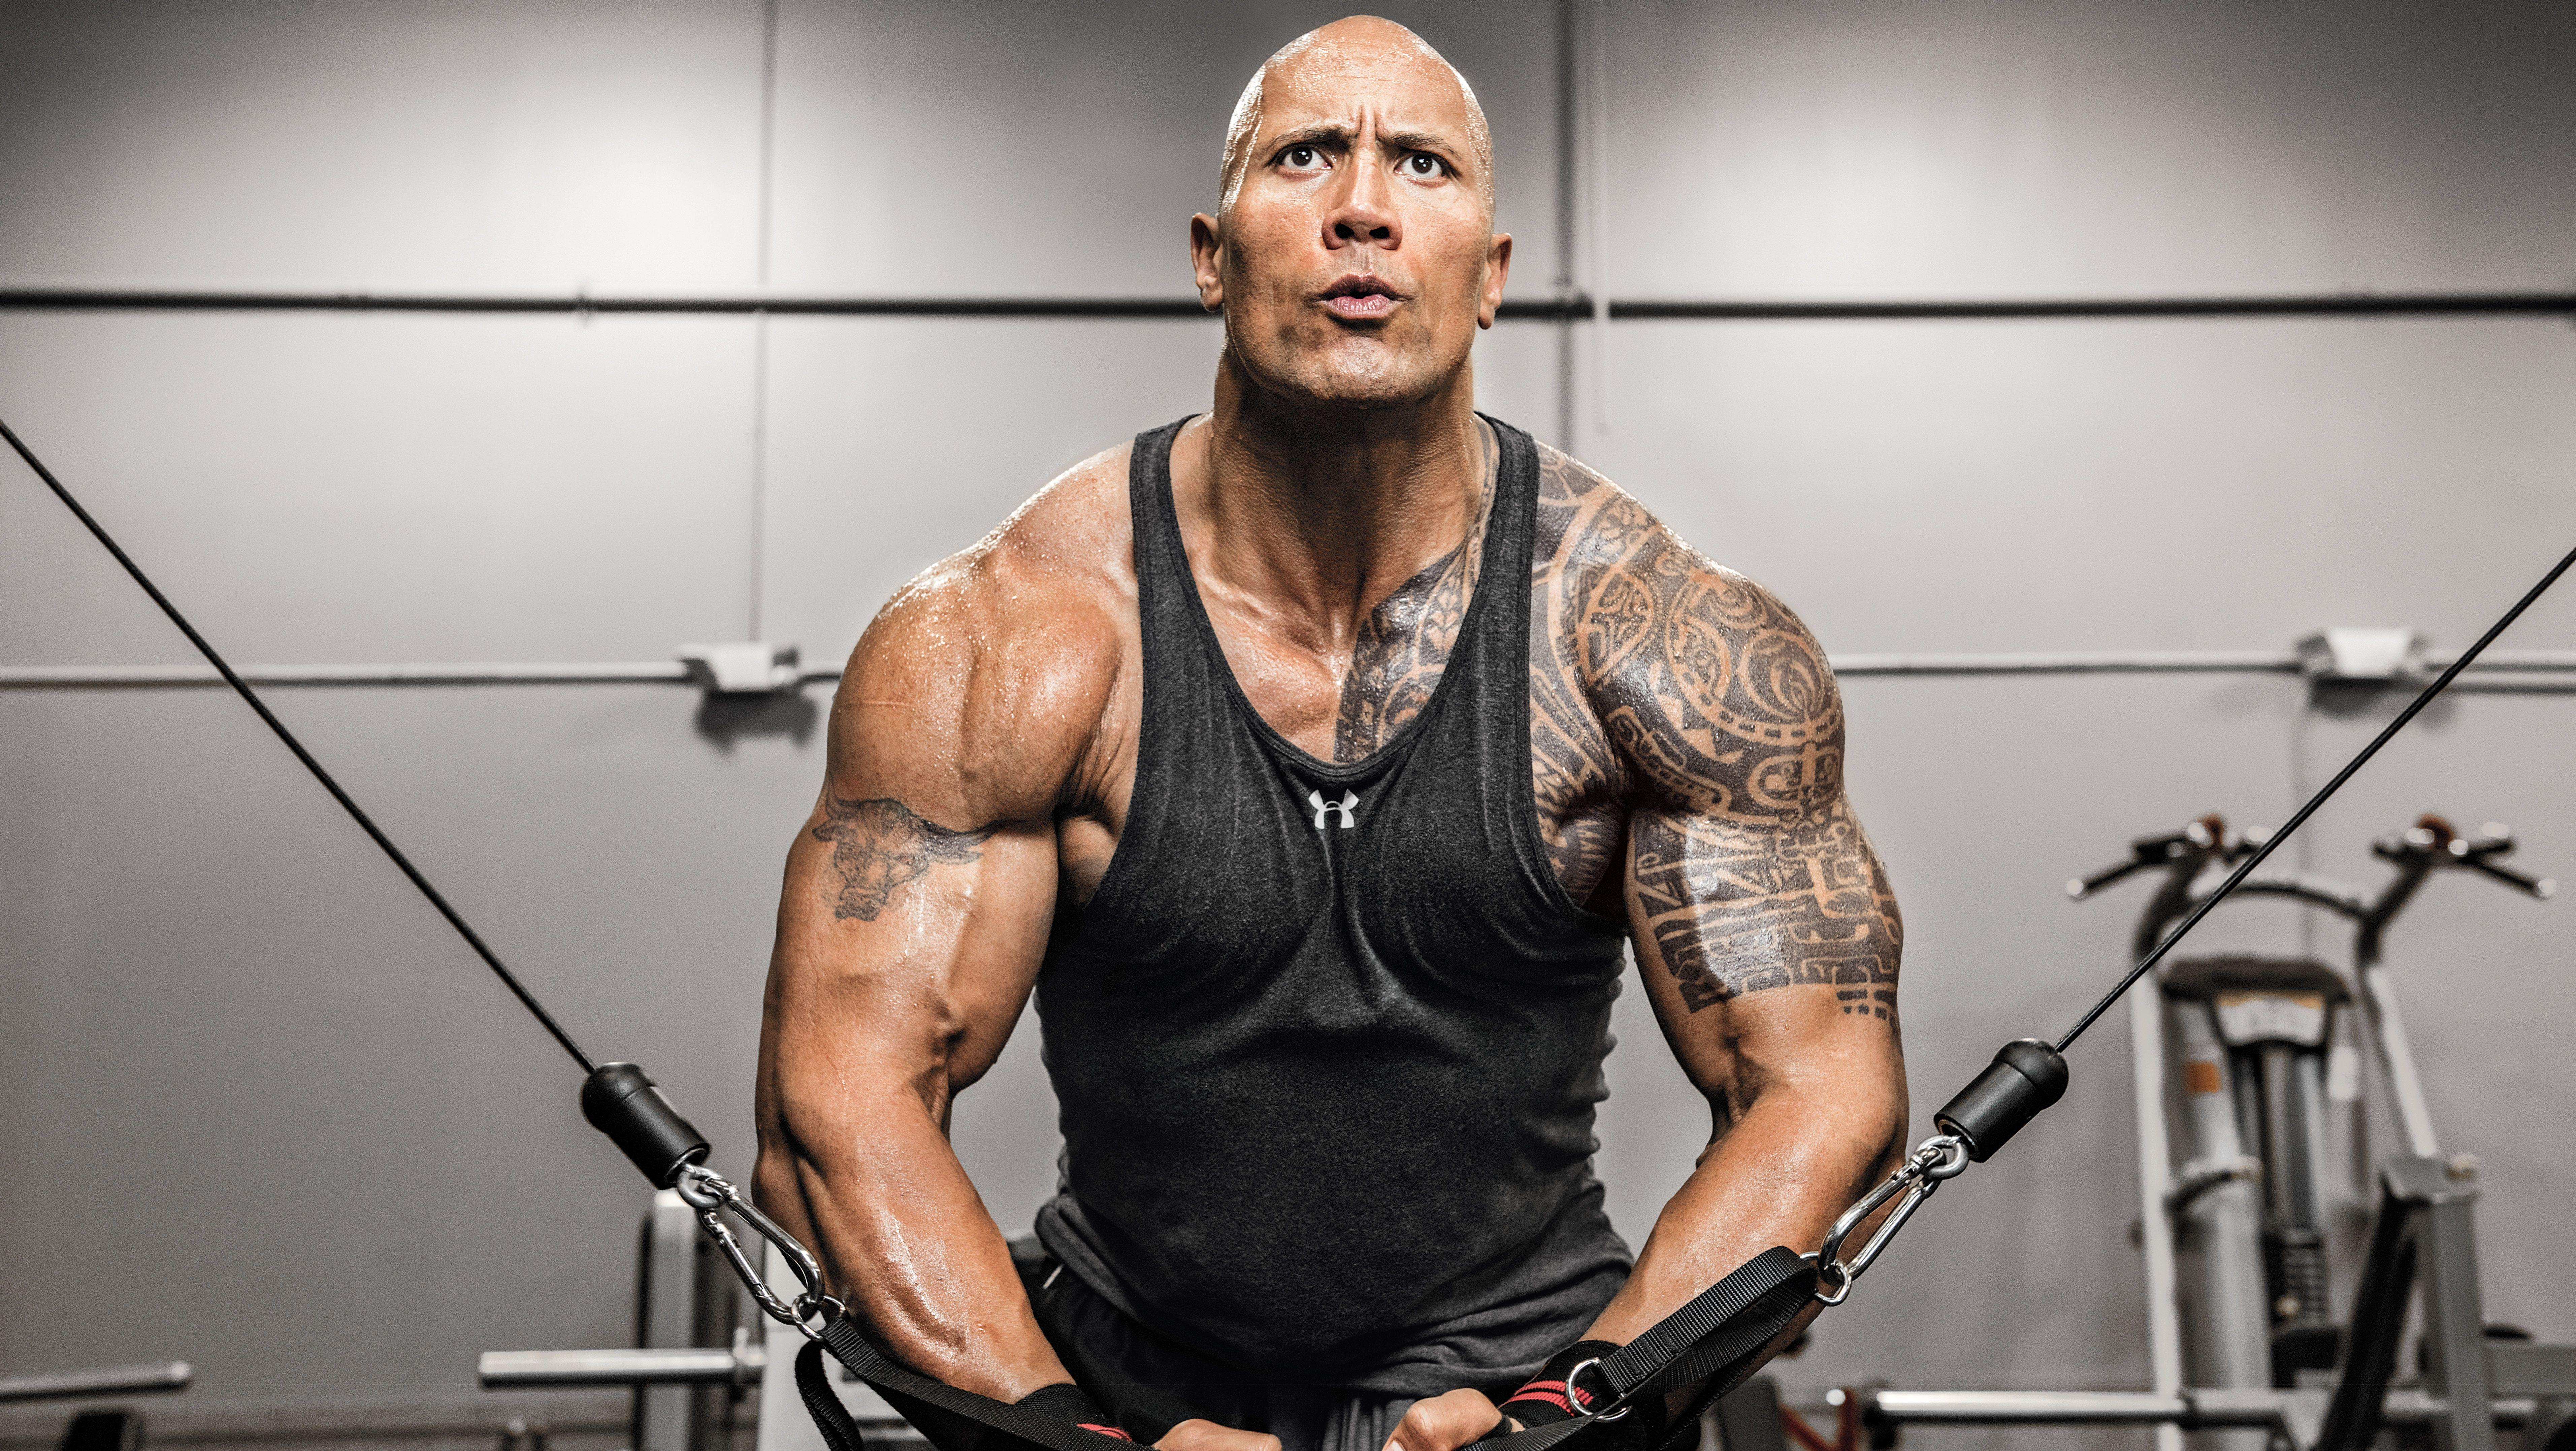 Wallpapers Dwayne Johnson, The Rock, WWE Wrestler, 4K, Celebrities